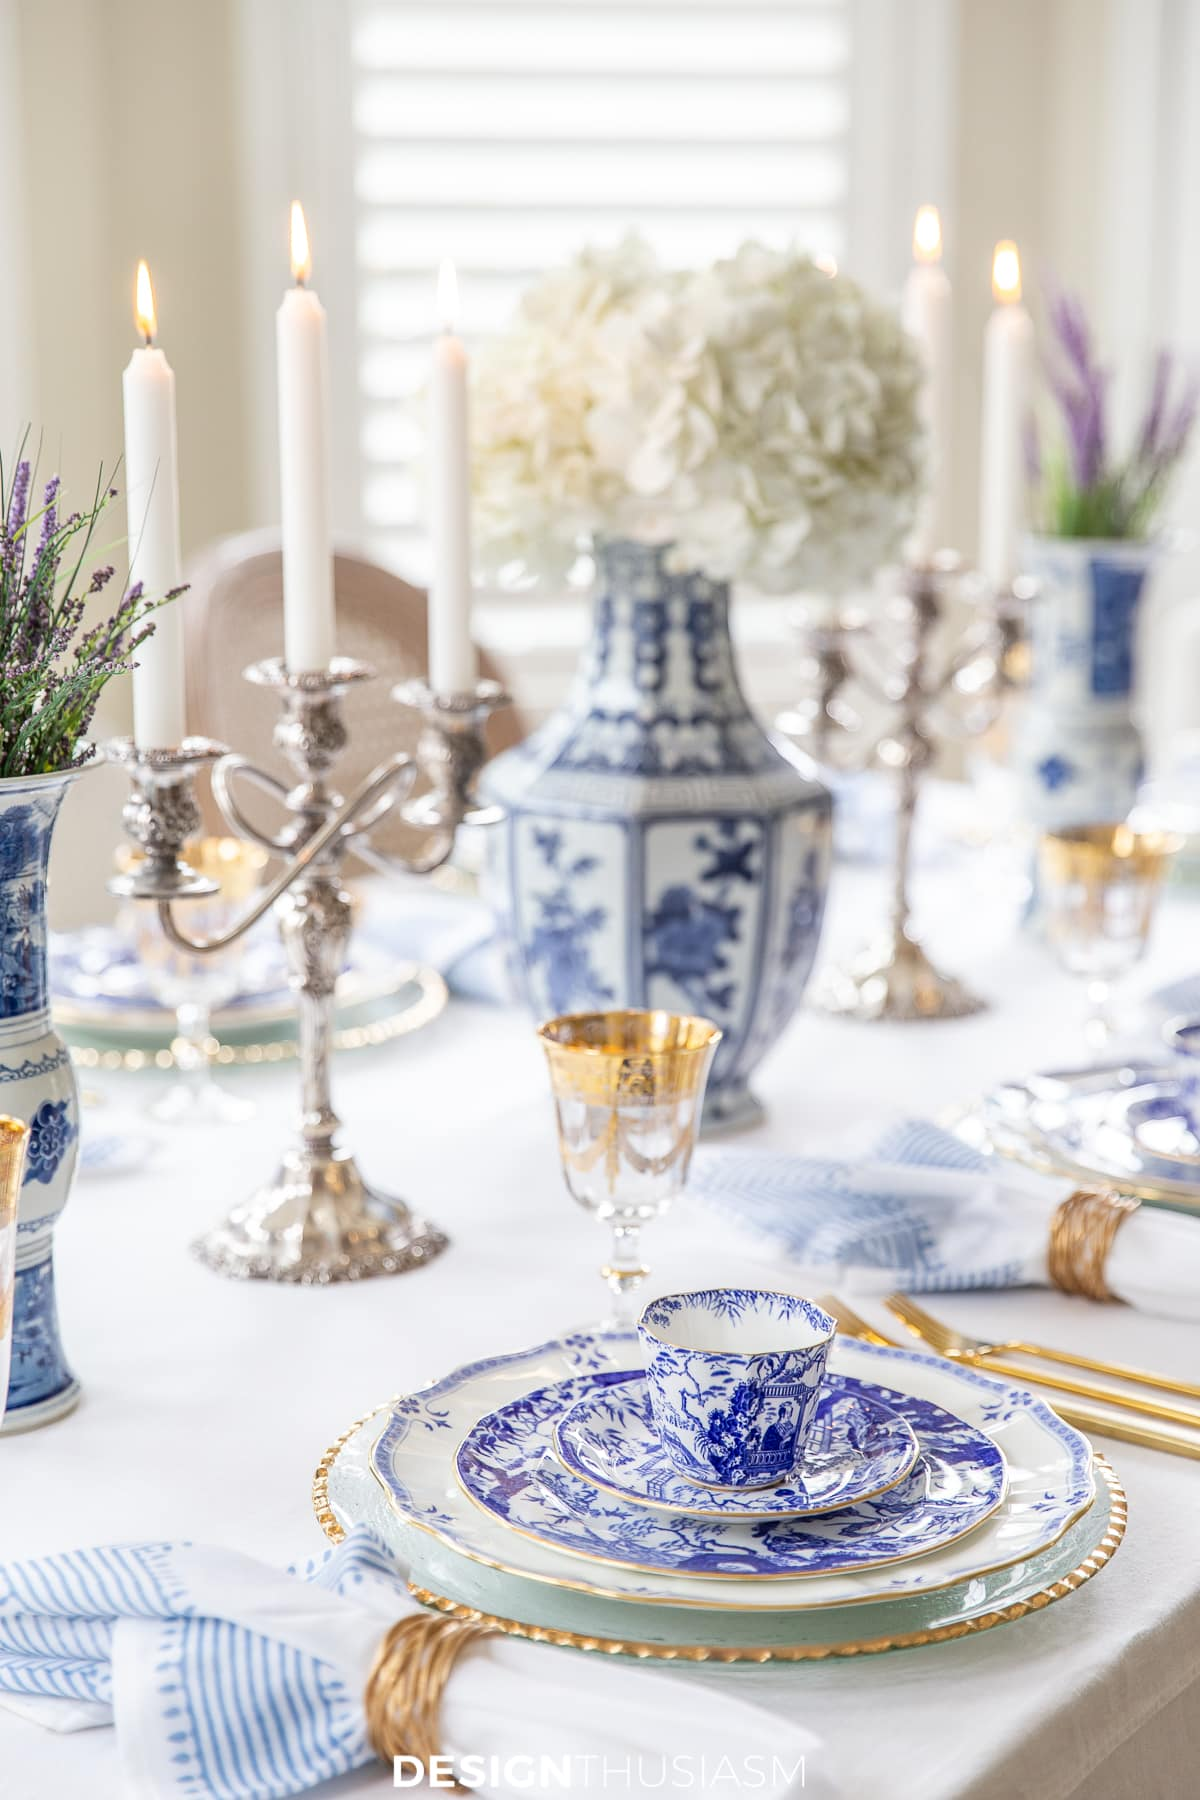 blue and white china table setting with white hydrangeas